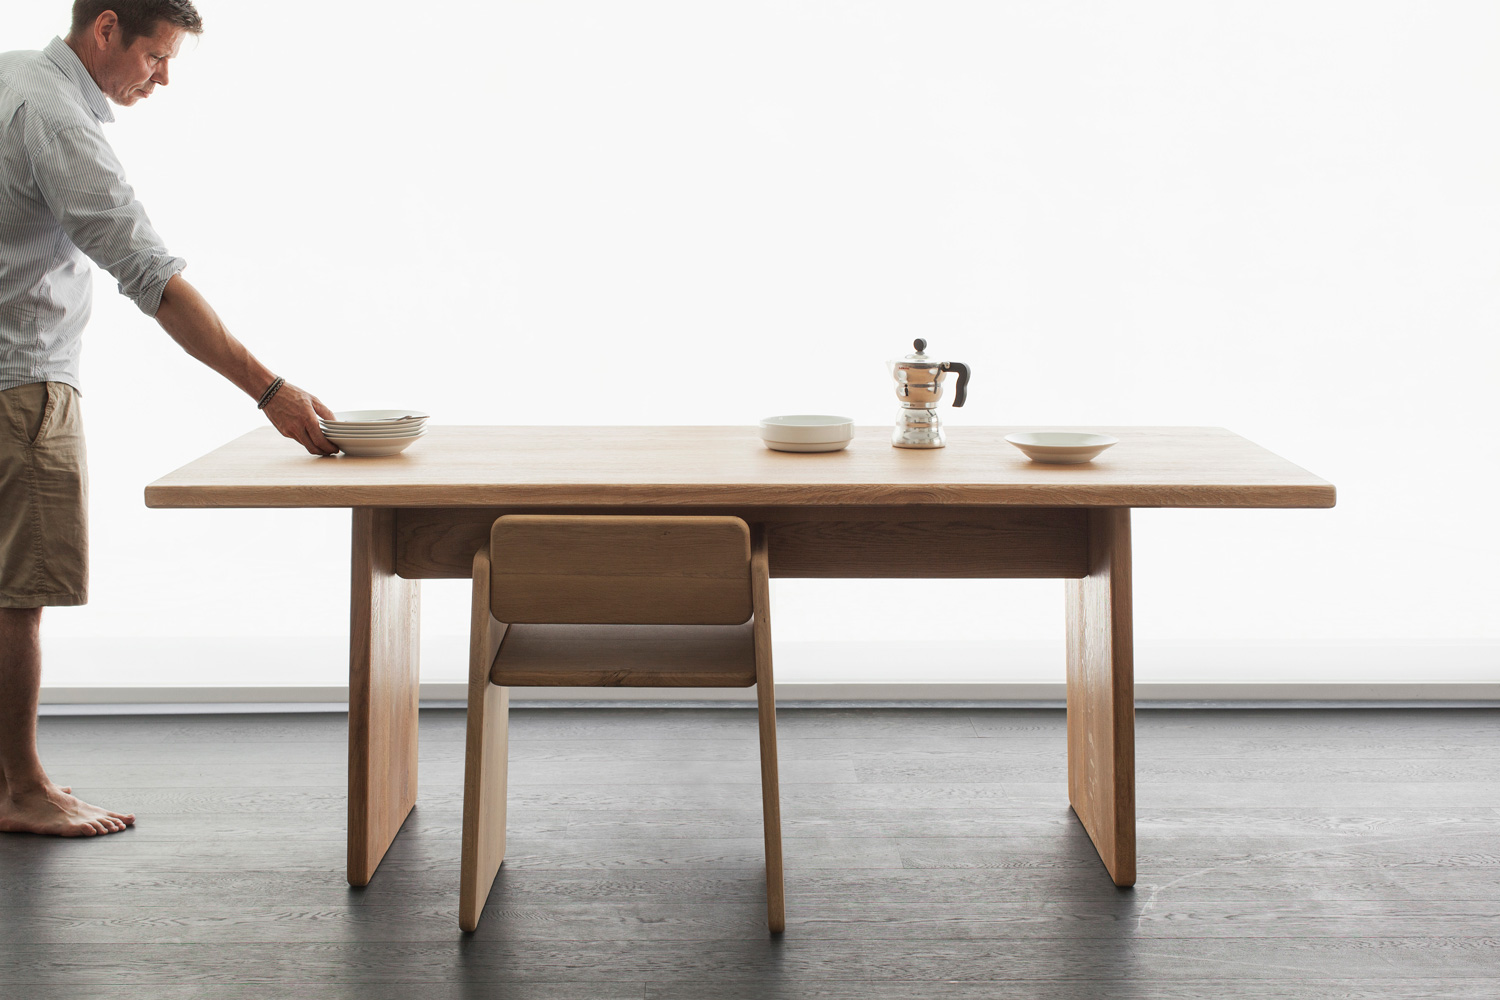 Board Collection by Julien Renault for Belgium is Design | Yellowtrace